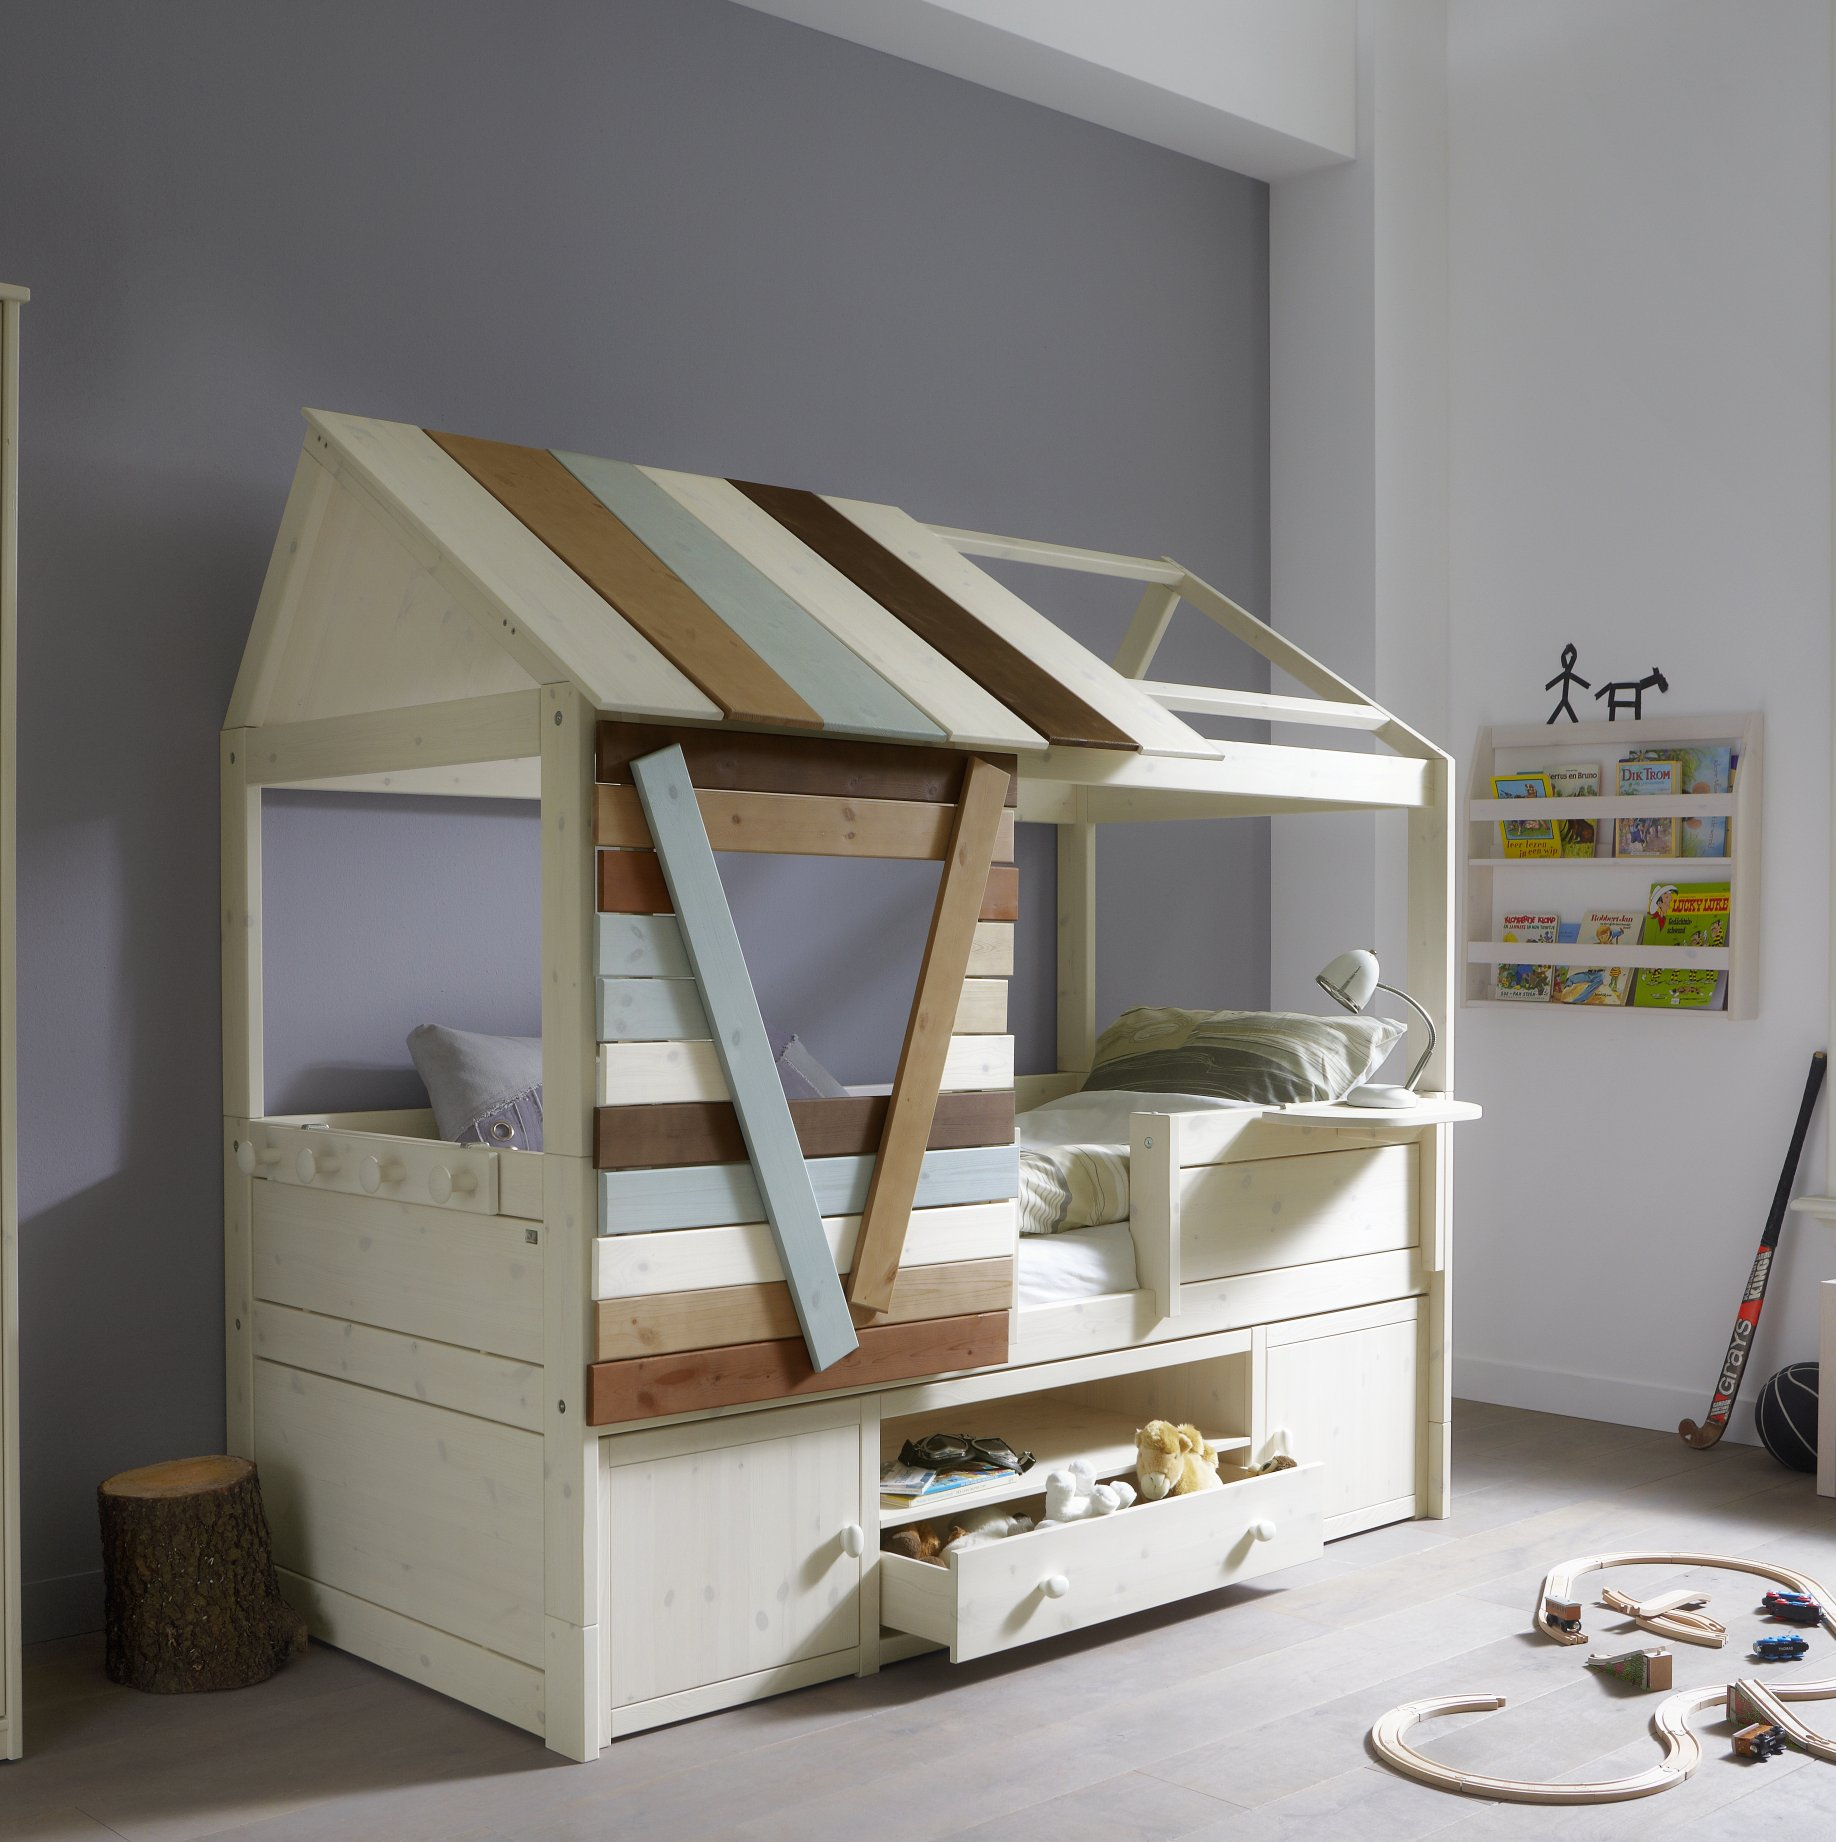 Tree house cabin bed solid wood for children in s a - Solid wood youth bedroom furniture ...